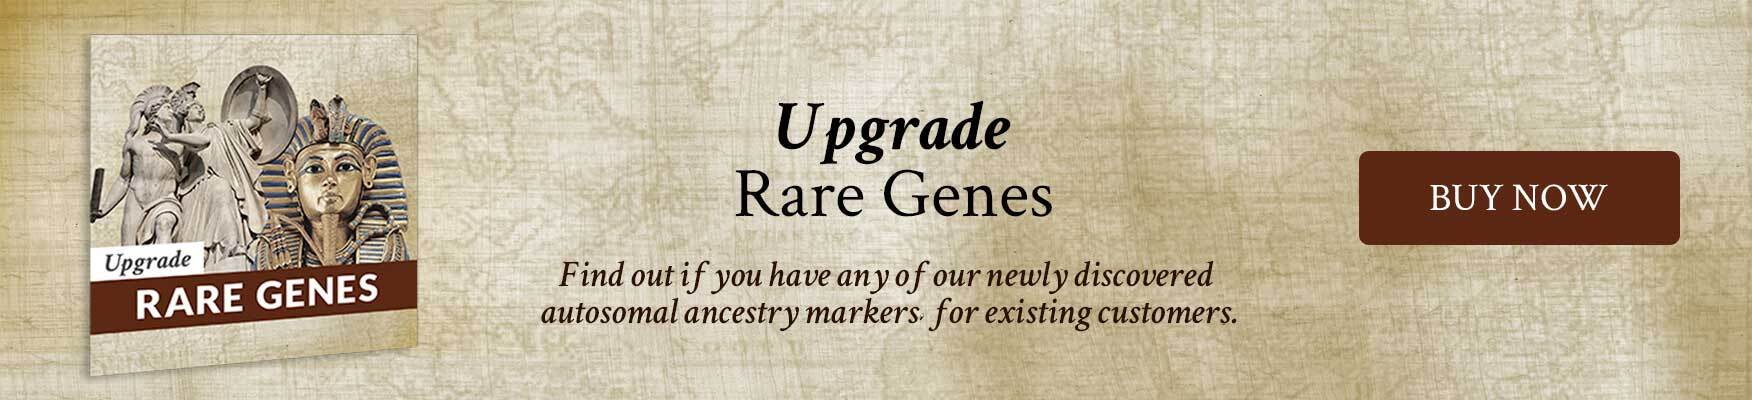 upgrade rare genes from history banner post